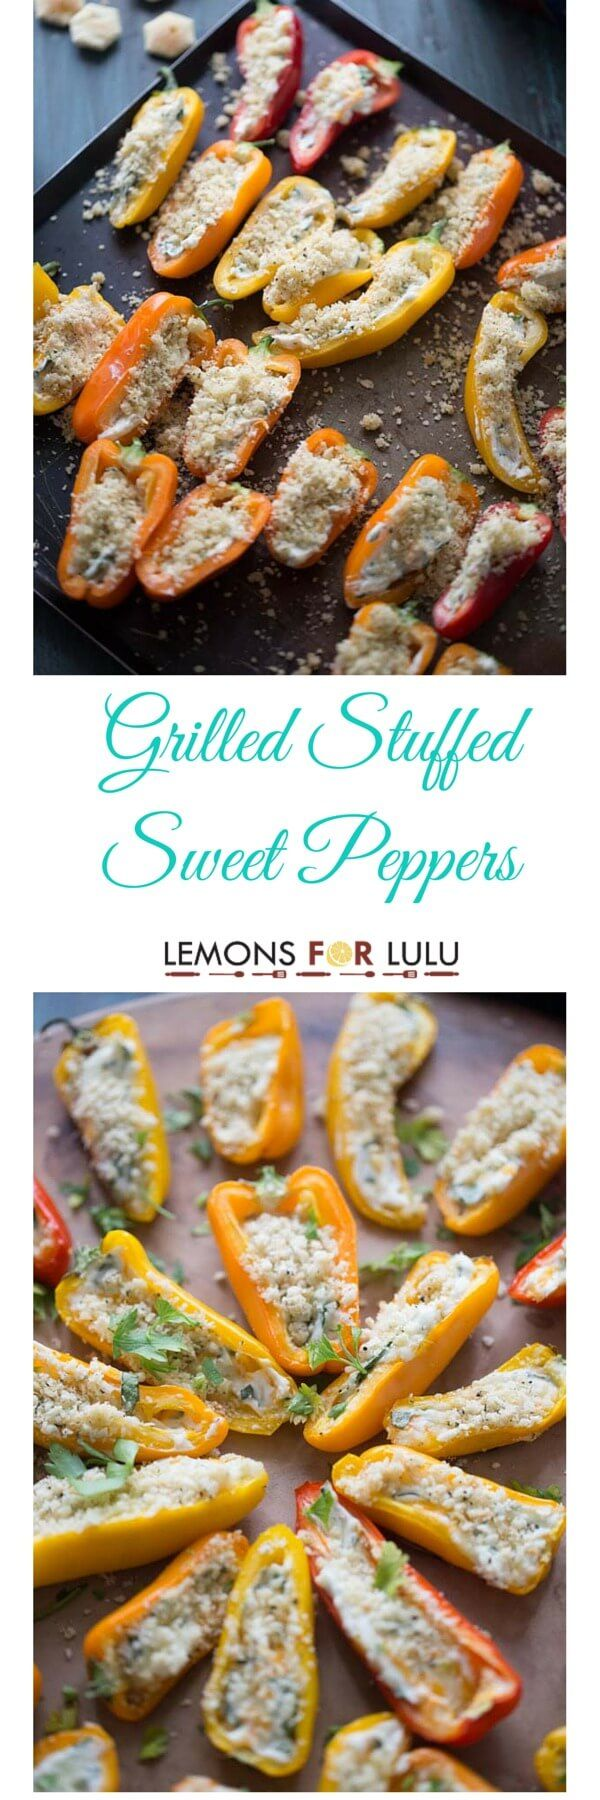 Mini Grilled Stuffed Peppers